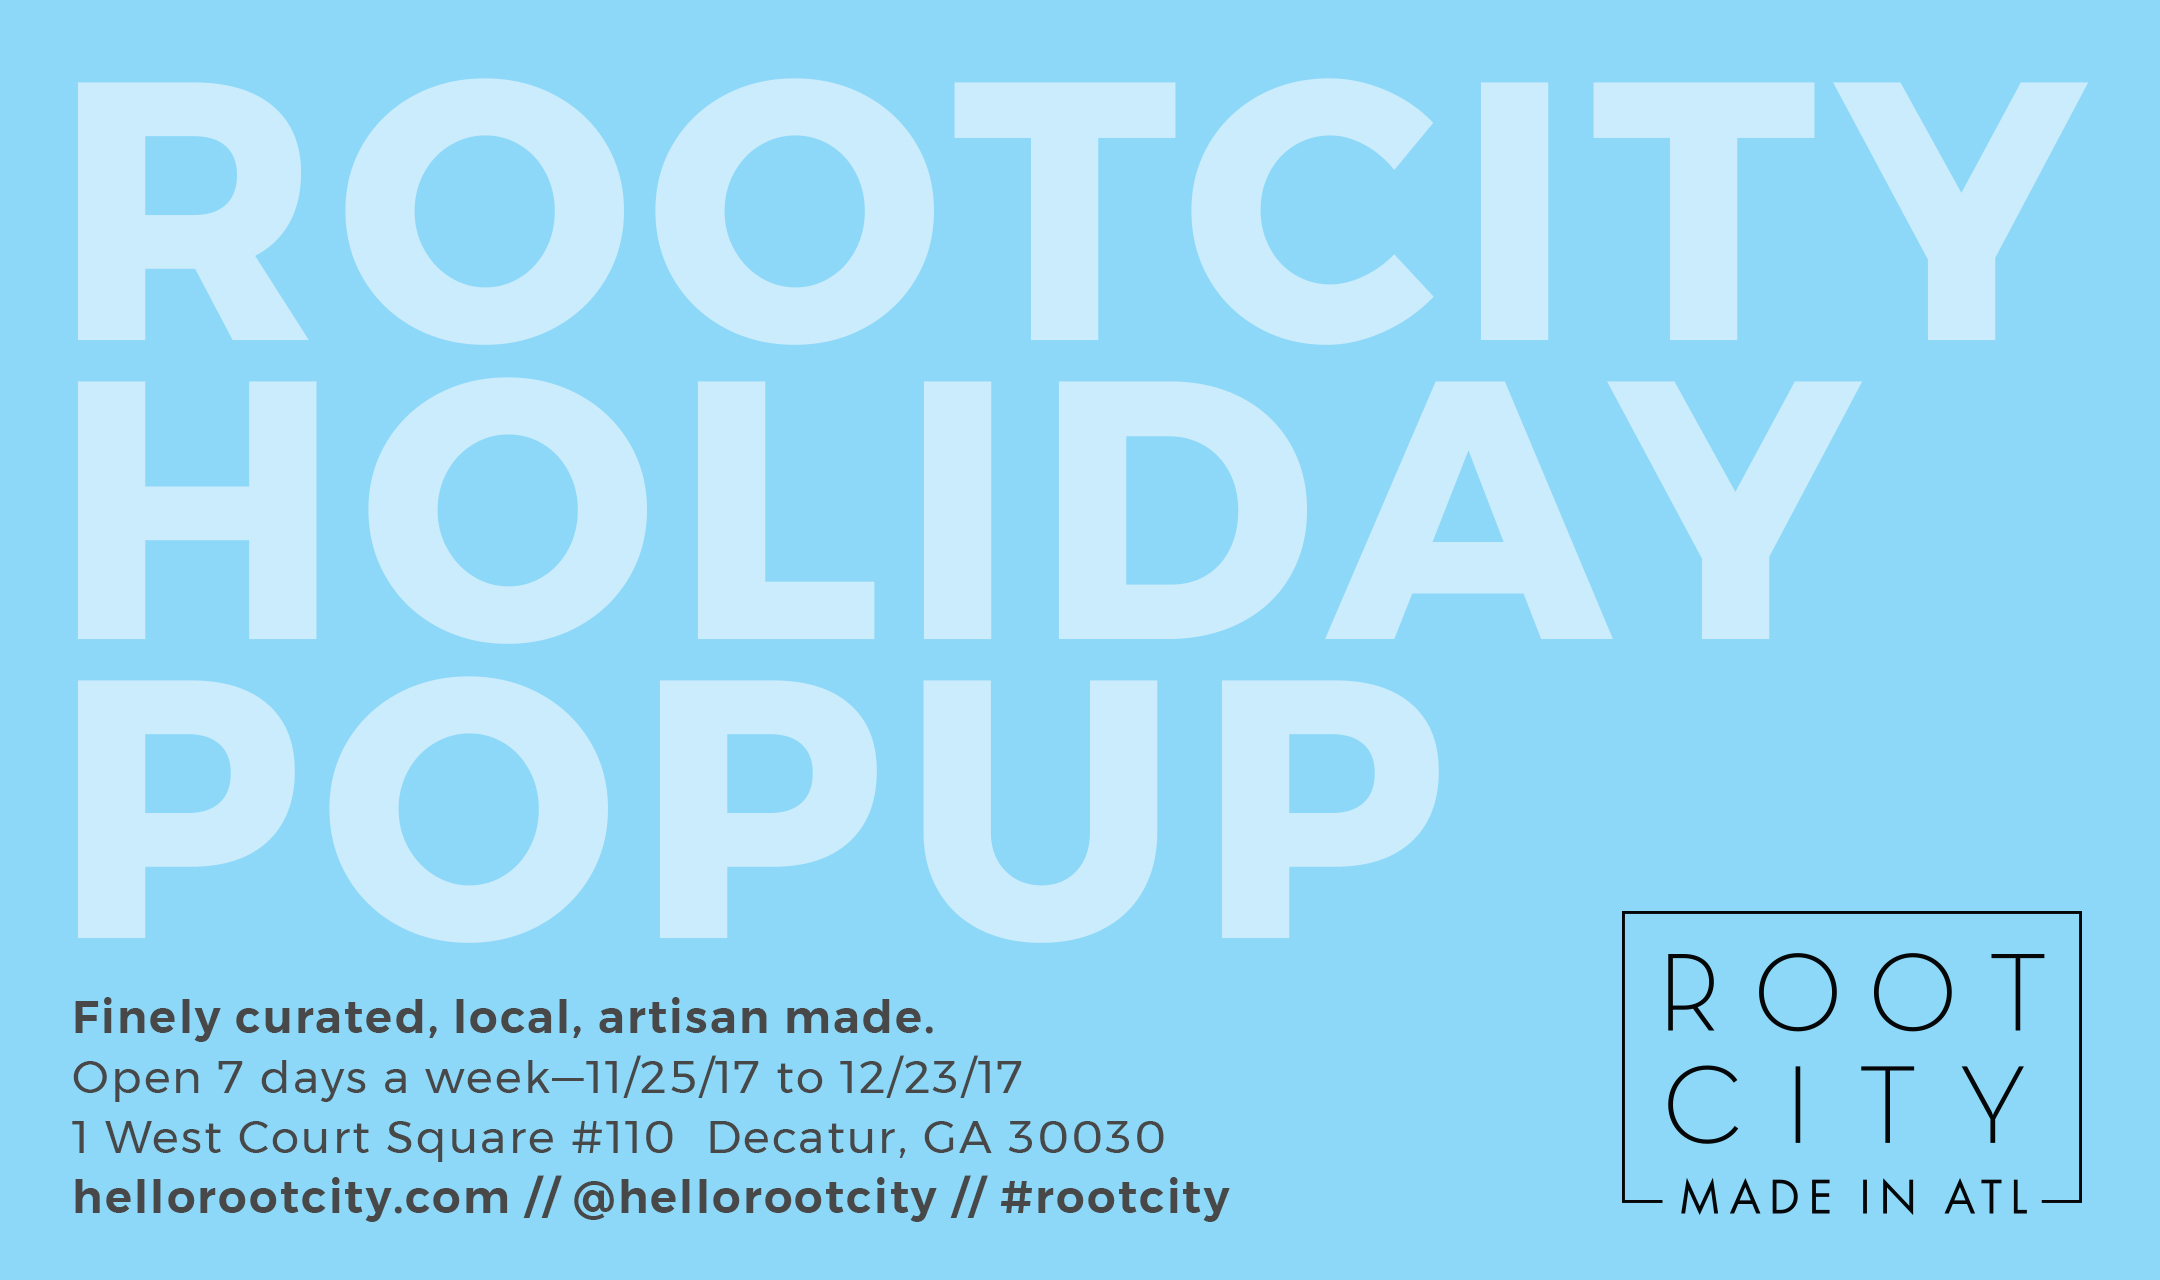 Root City Holiday Pop-Up 2017 | November 25 to December 23, 2017